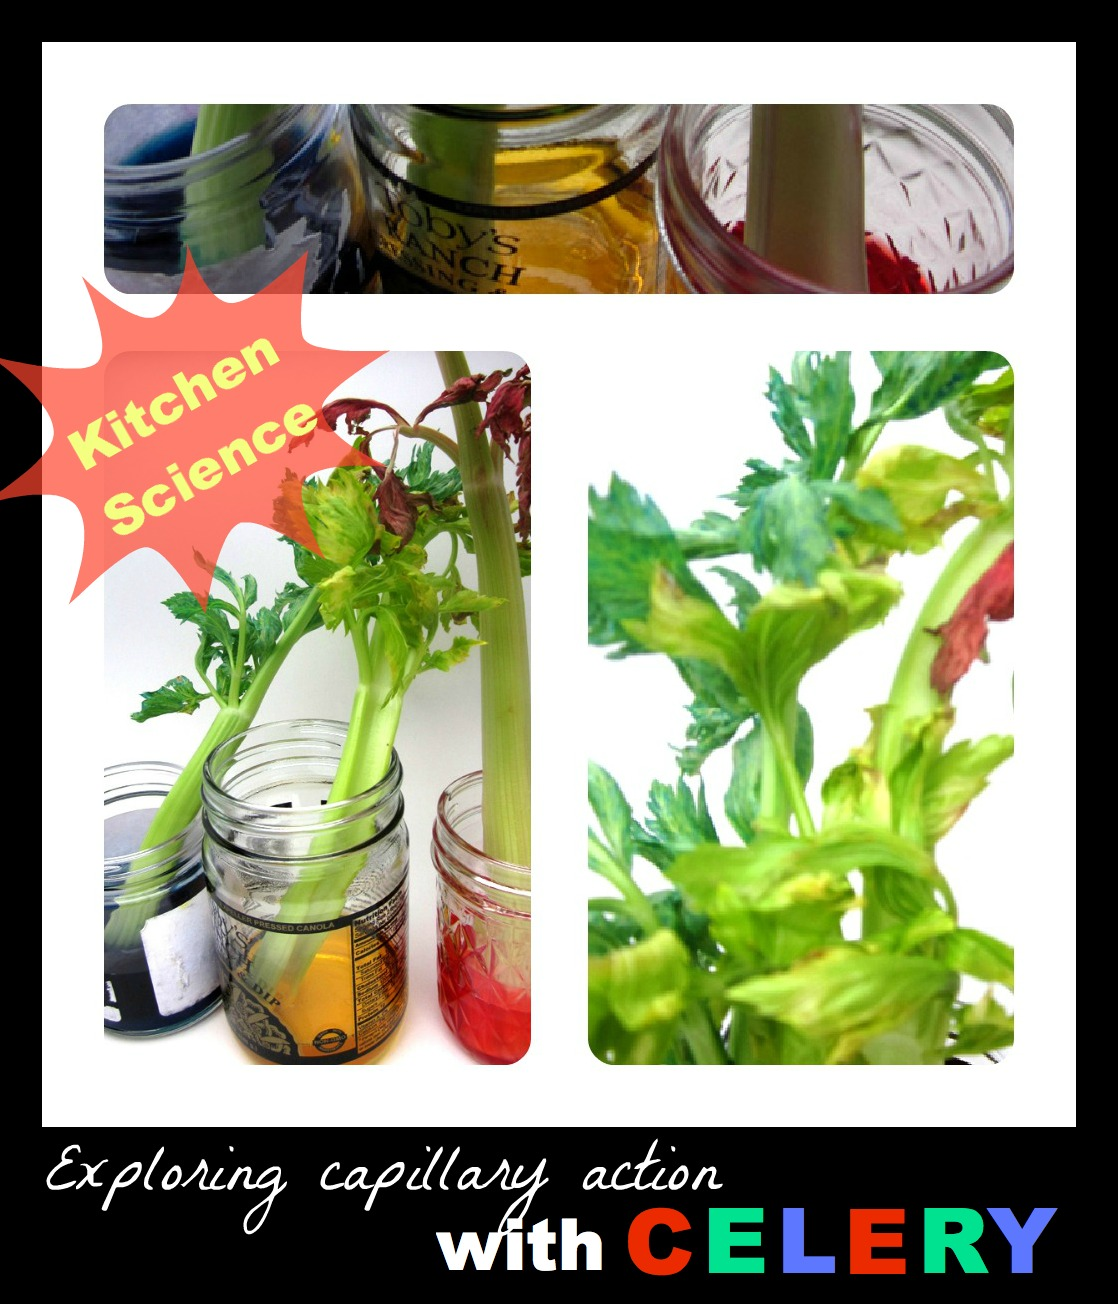 Kitchen Science: Mama's Little Muse: Colorful Celery: Kitchen Science; AND